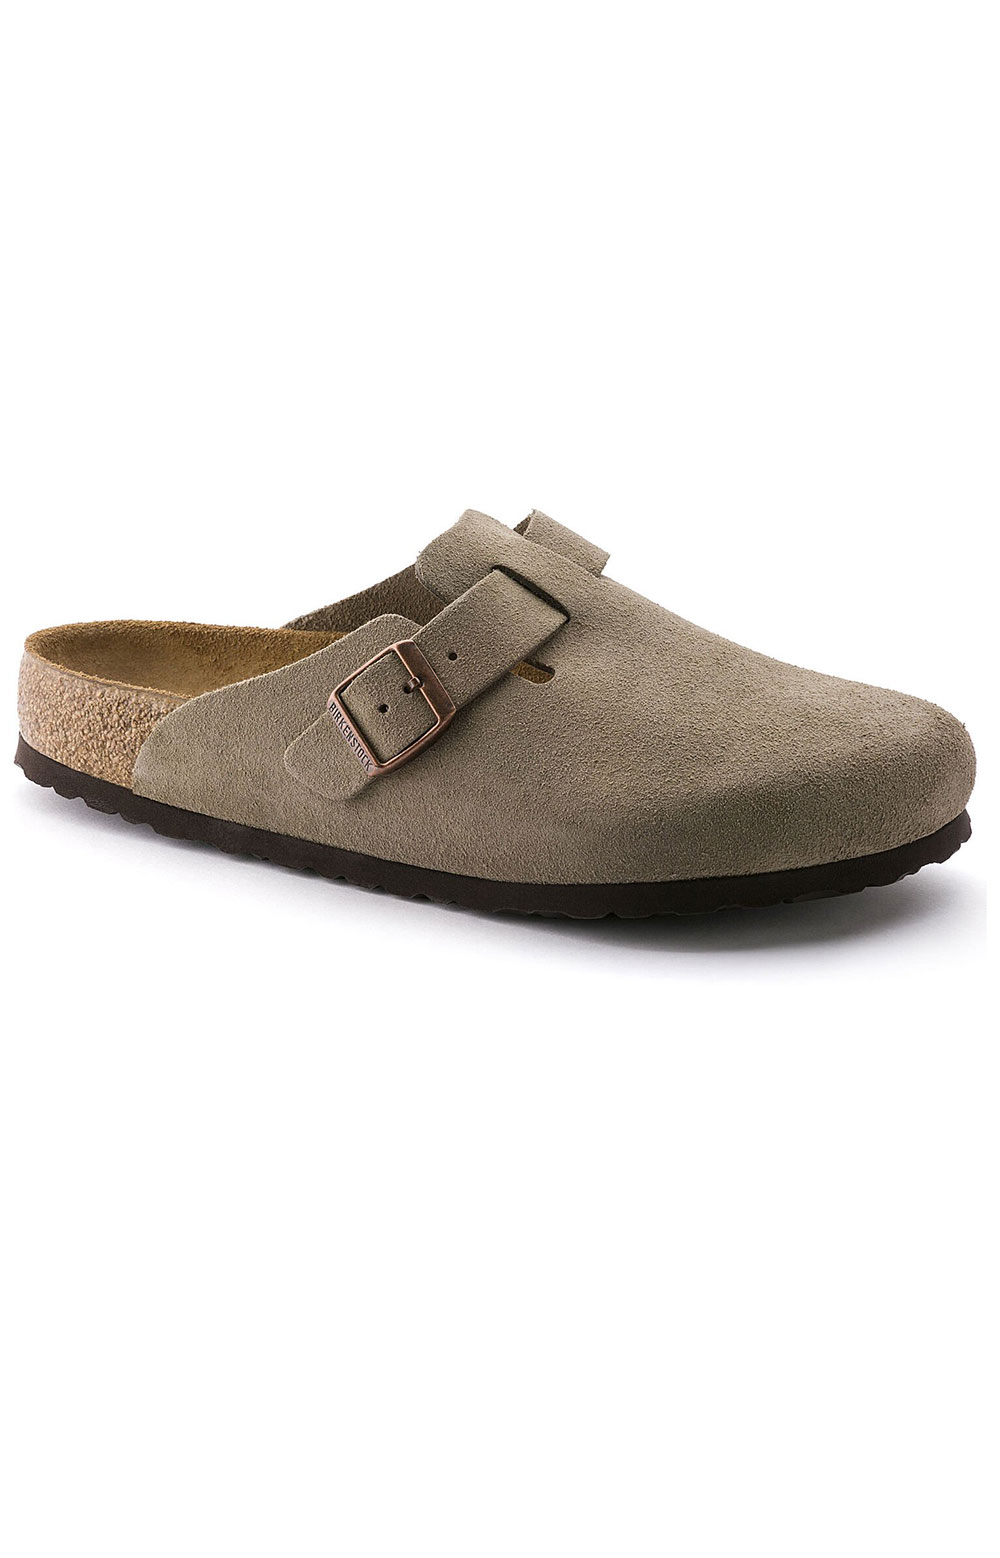 (0560771)Boston Soft Footbed Sandals - Taupe Suede  2